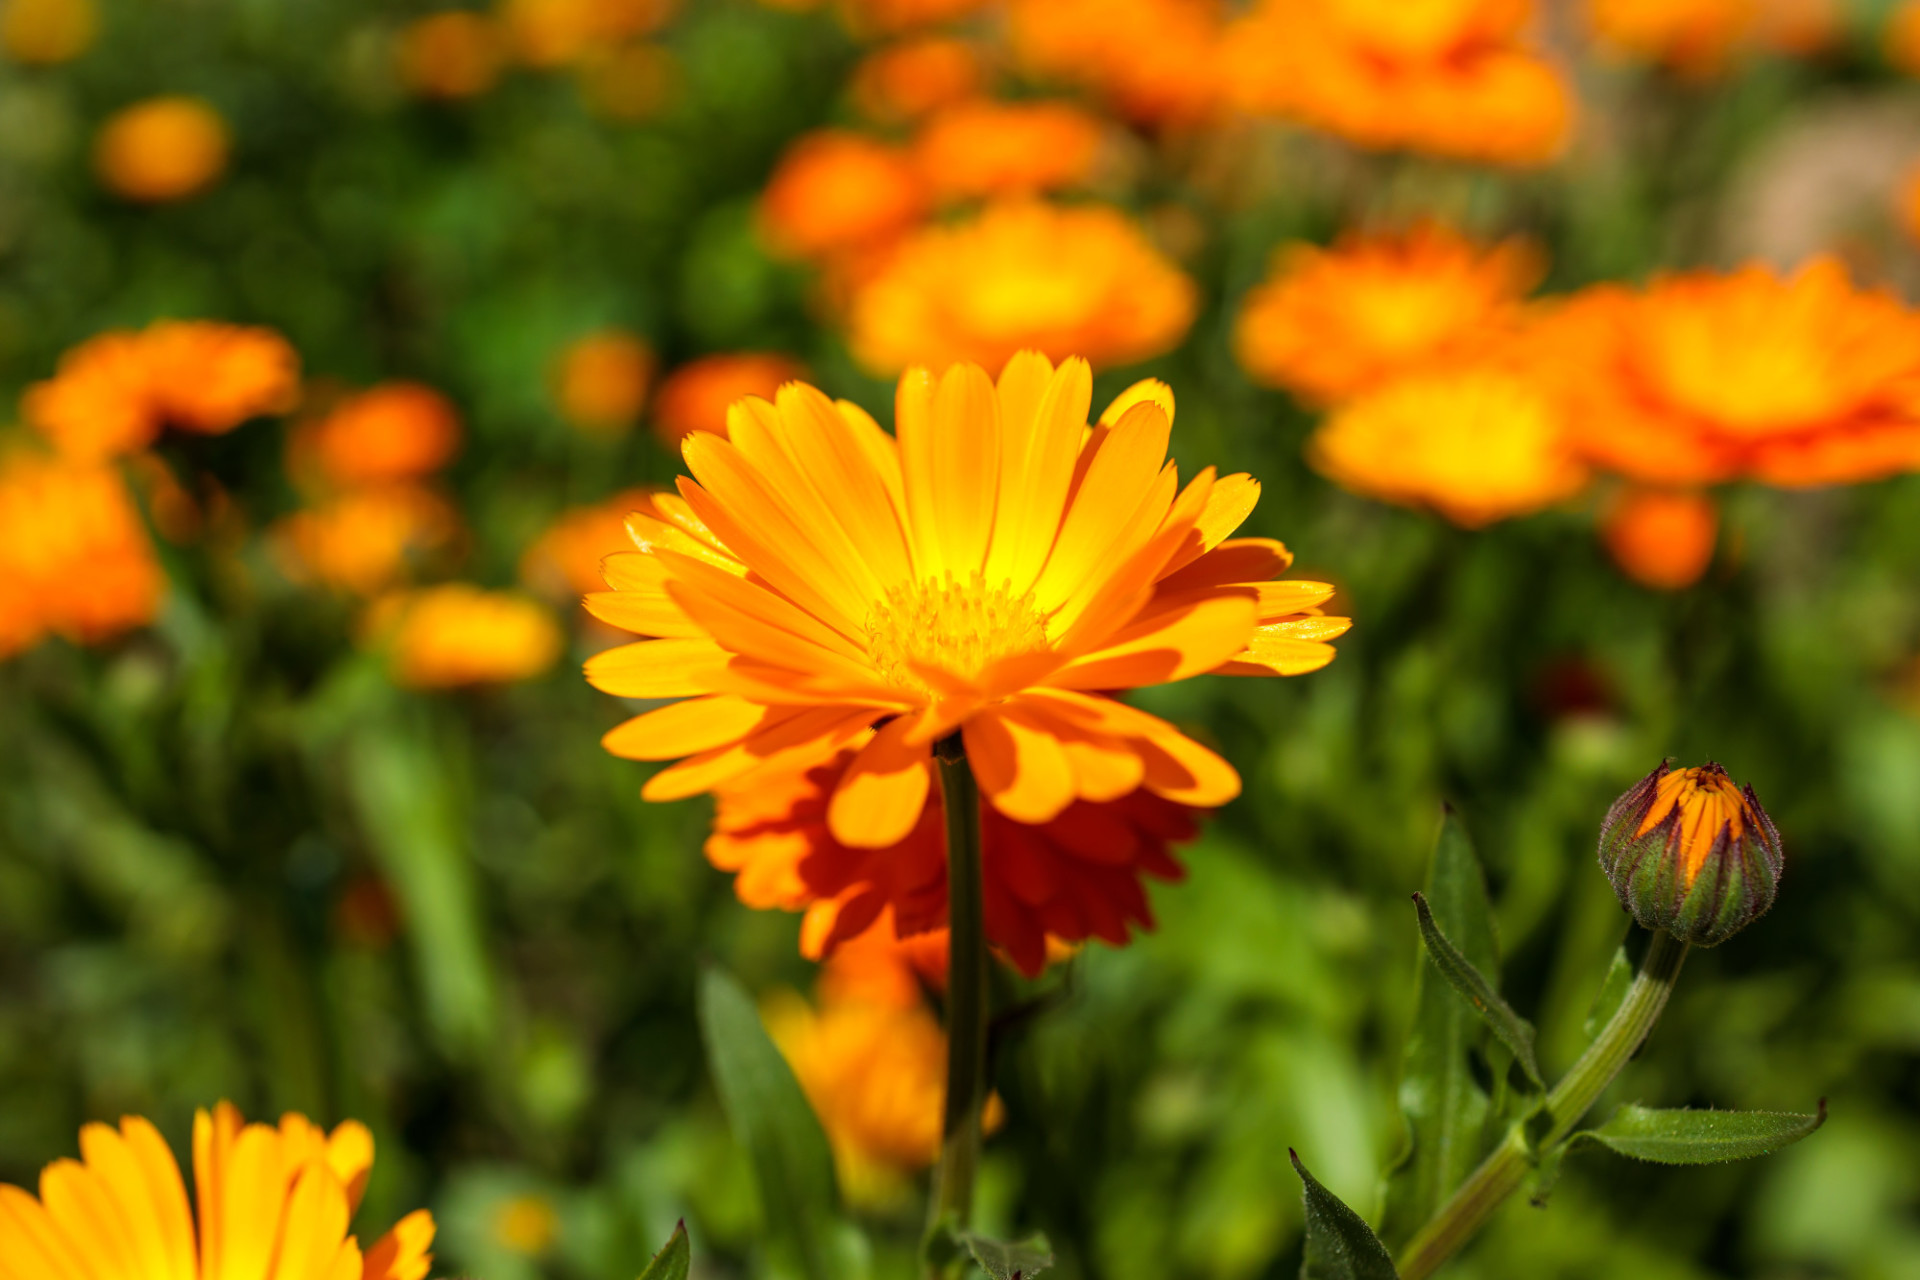 Marigold spreads out its petals